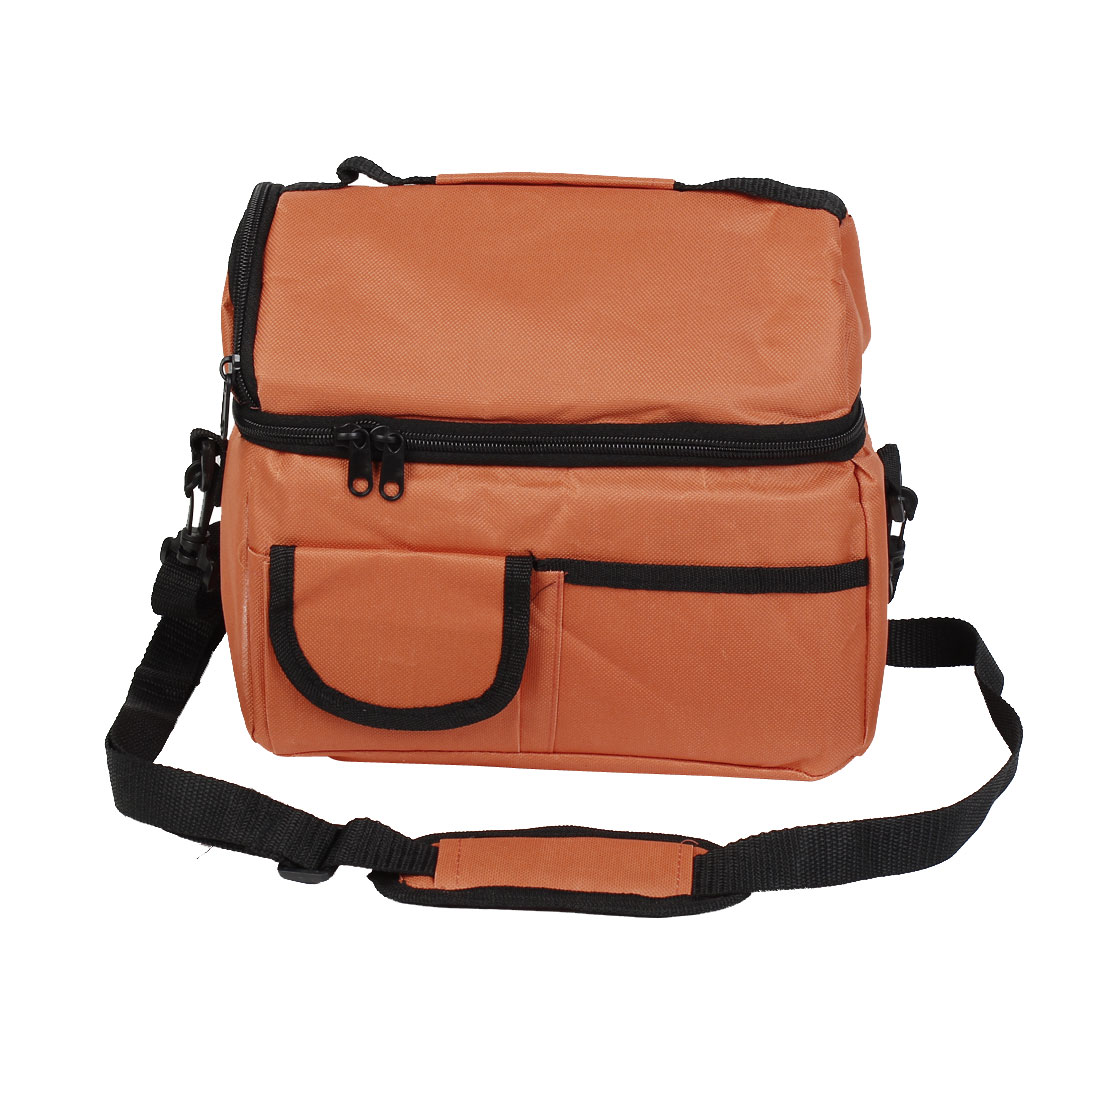 Polyester Lunch Box Cooler Bag Liner Shoulder Strap Travel Camouflage Tote Orange